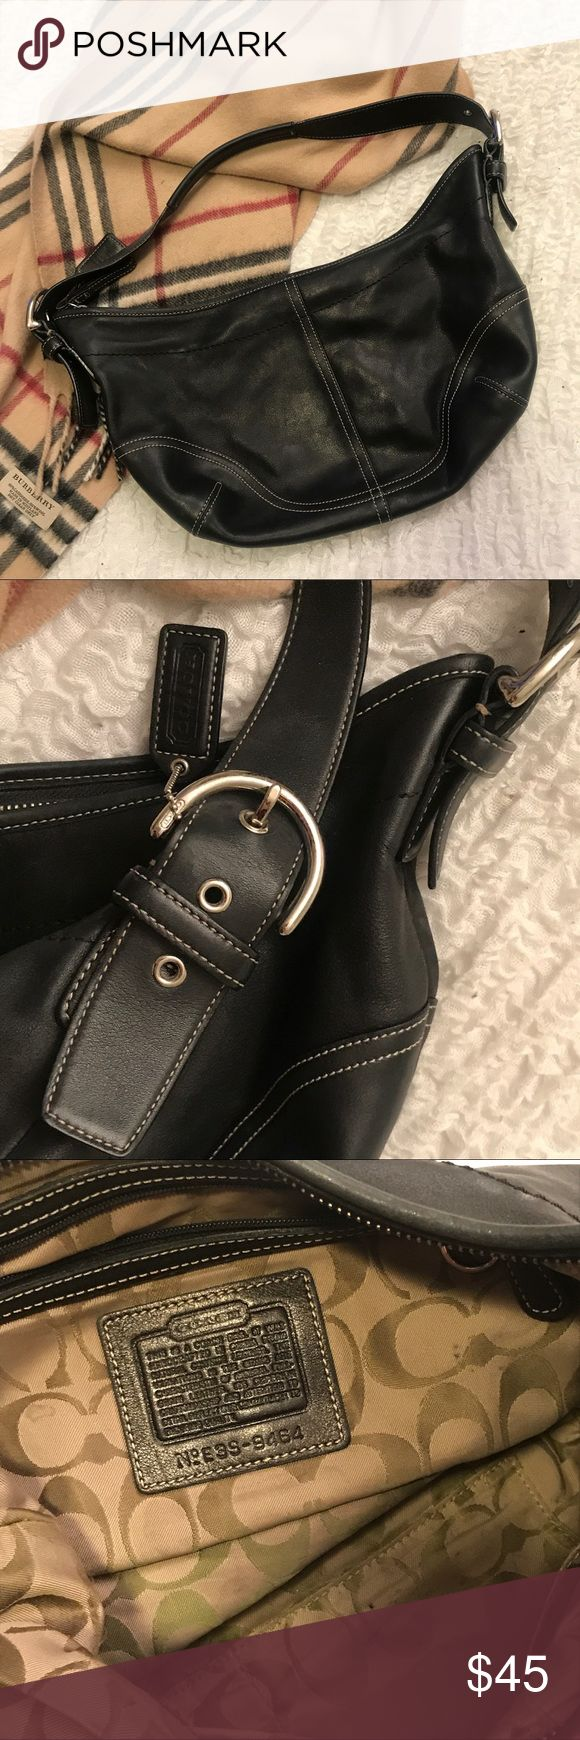 Authentic Coach Hobo Bag Authentic COACH hobo bag in black leather Coach Bags Hobos